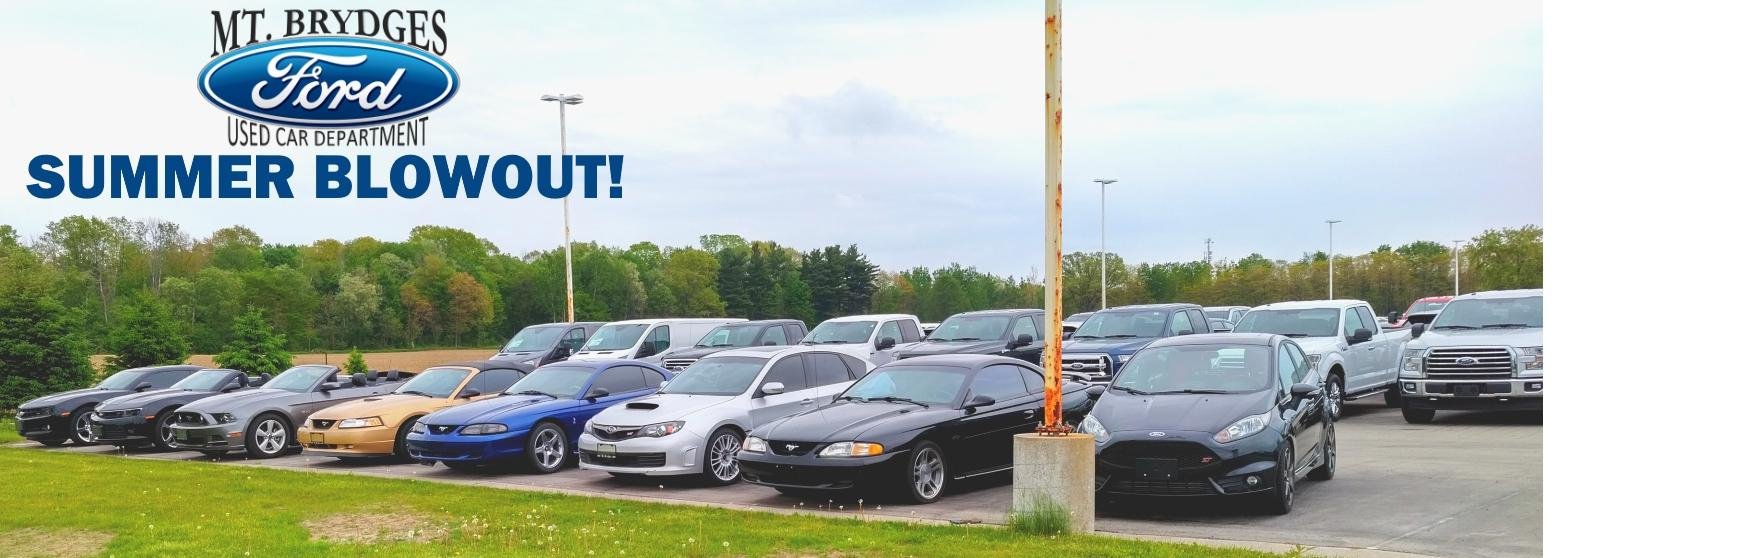 Mt Brydges Ford 2017 Summer Blowout